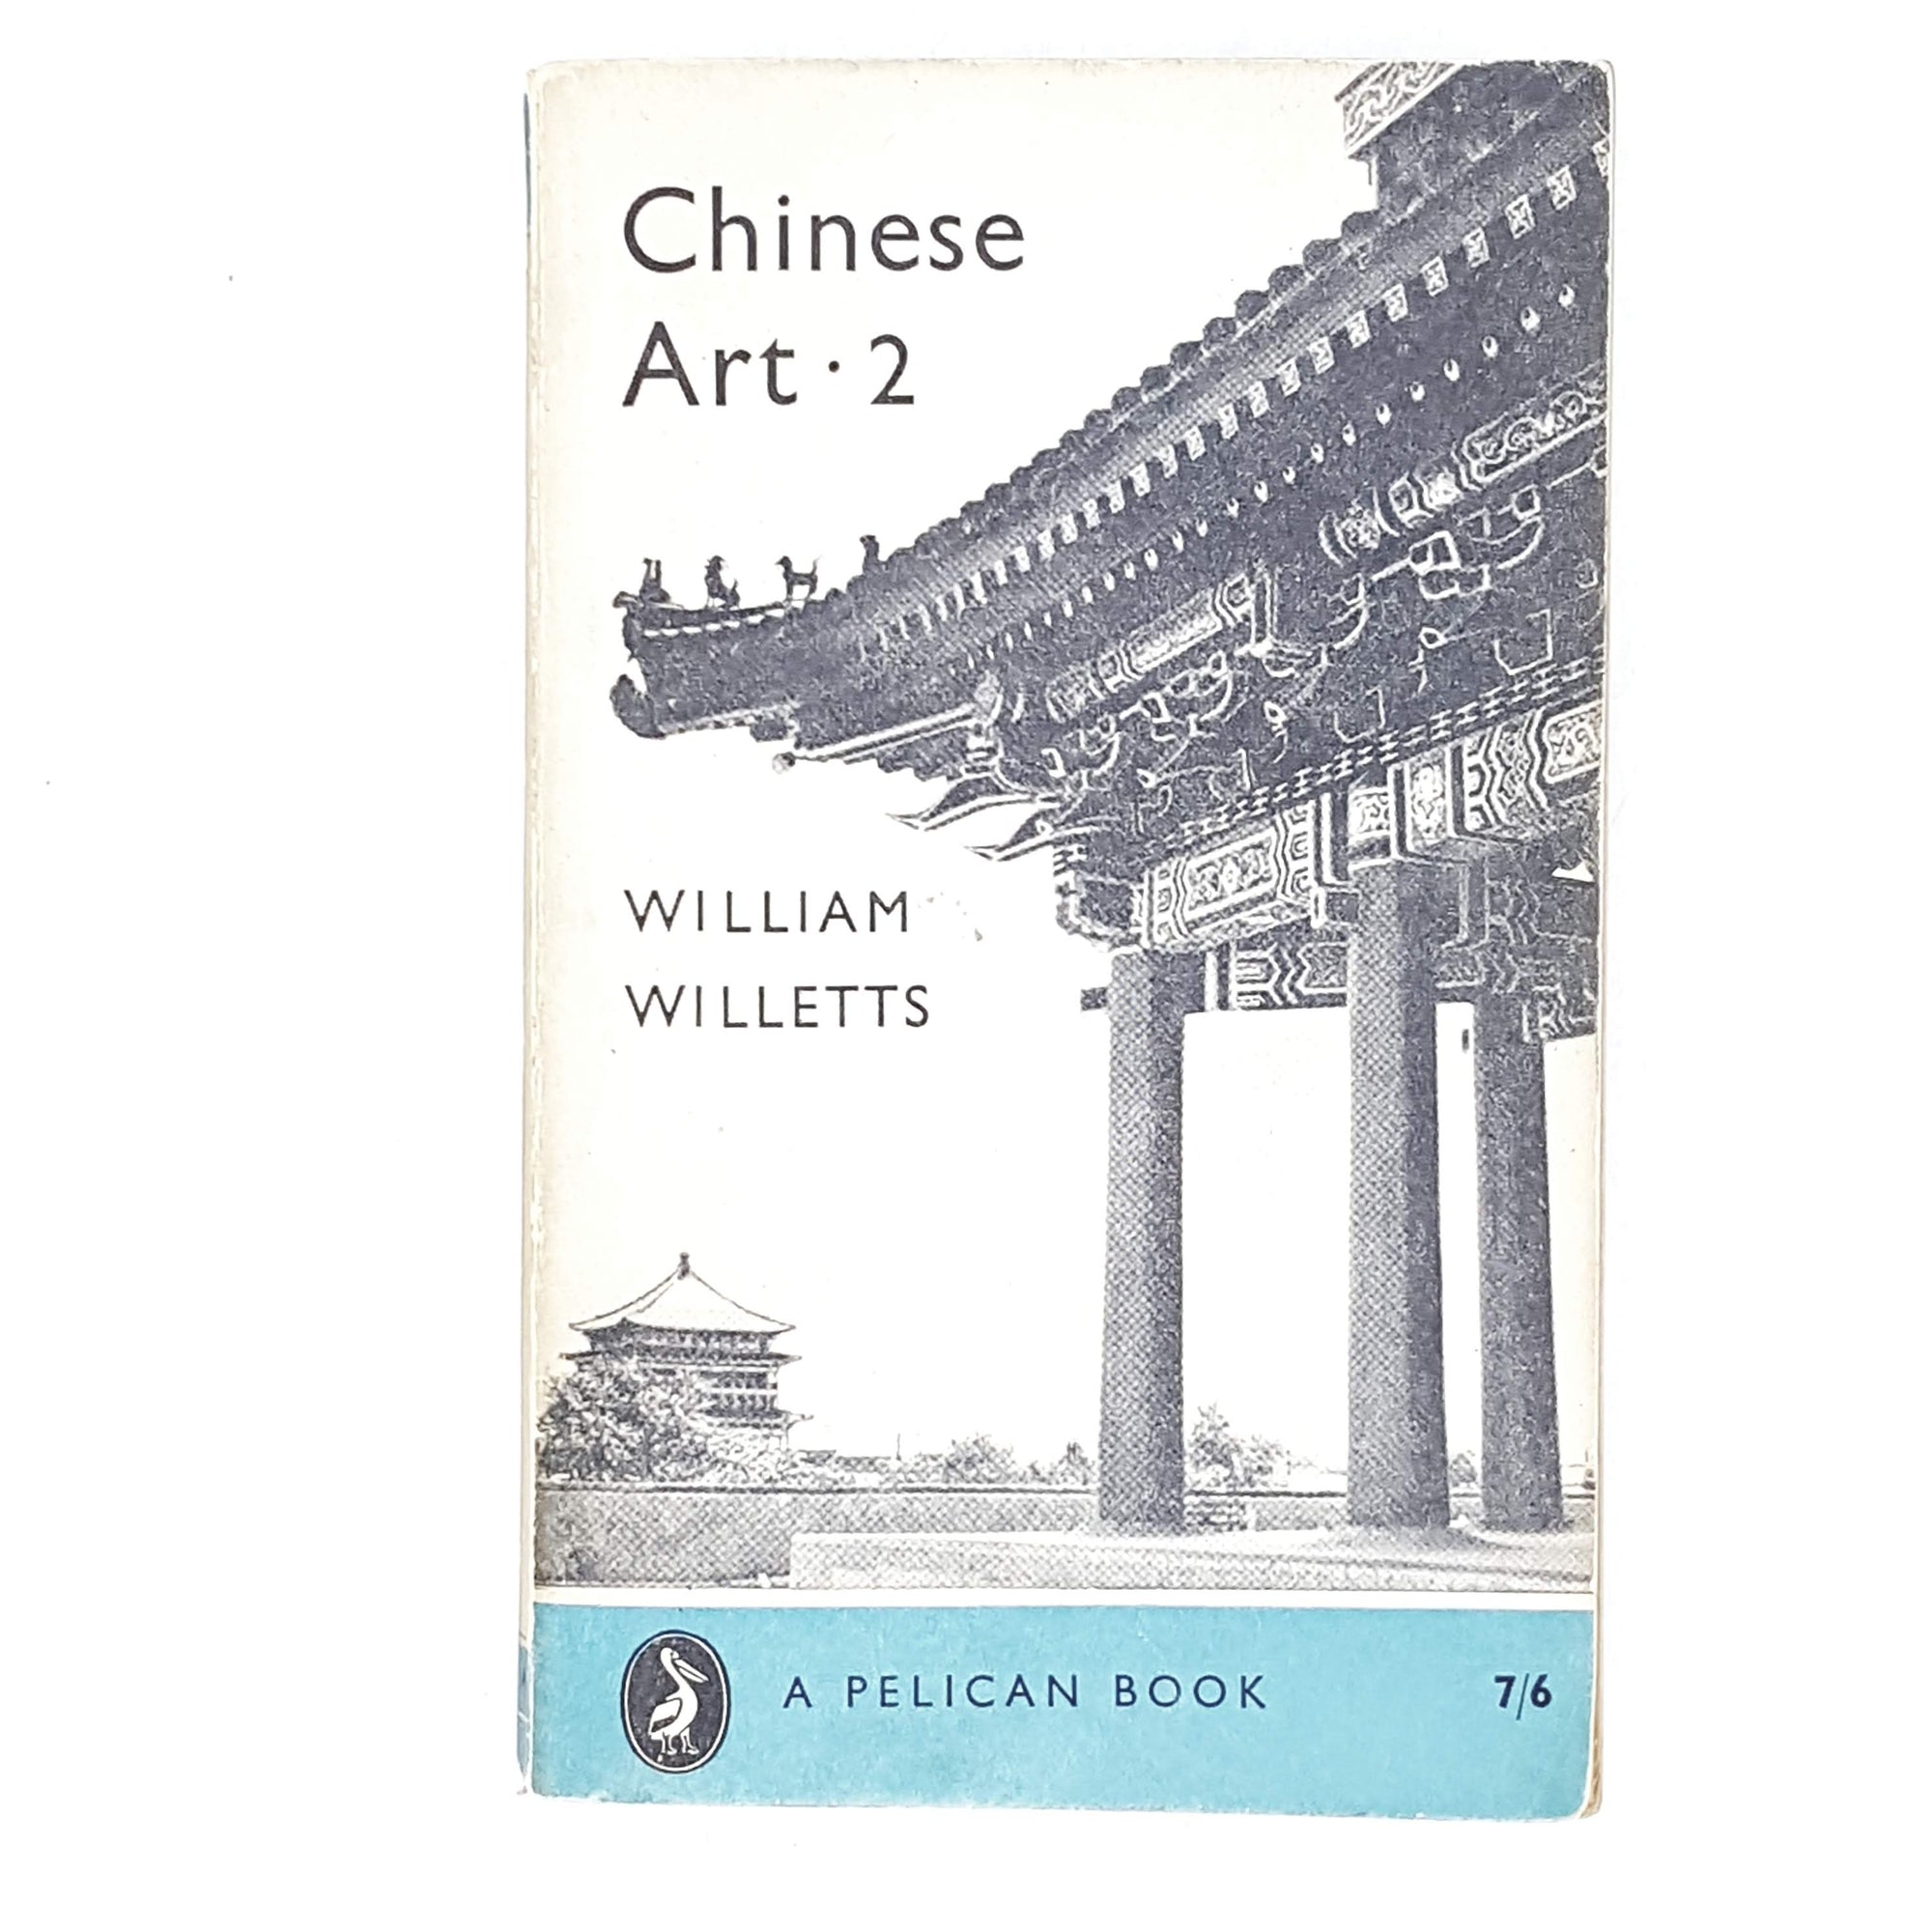 vintage-pelican-chinese-art-ii-by-william-willetts-1958-pale-blue-country-house-library